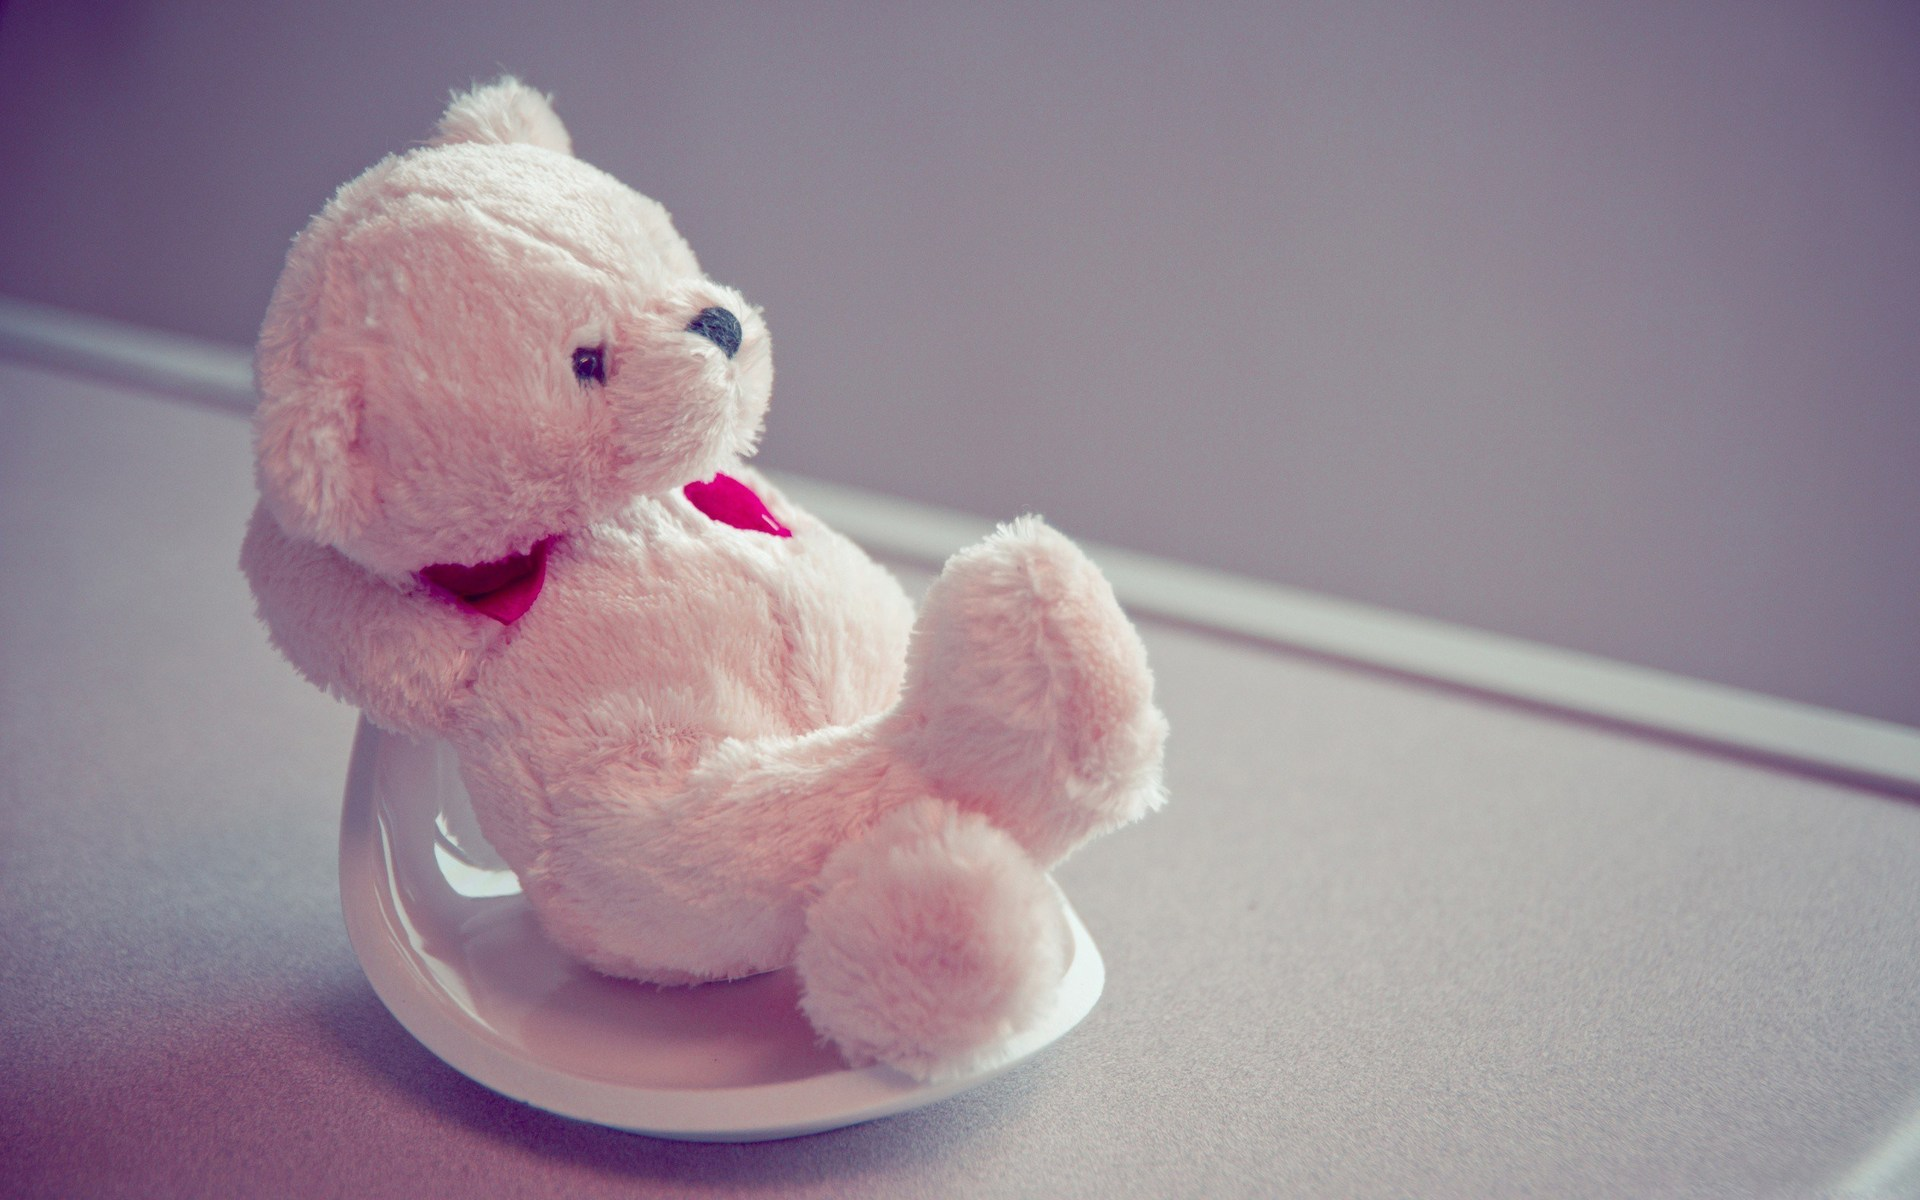 Wallpapers Cute Teddy Bears Is A Great Wallpaper For Your 1920x1200